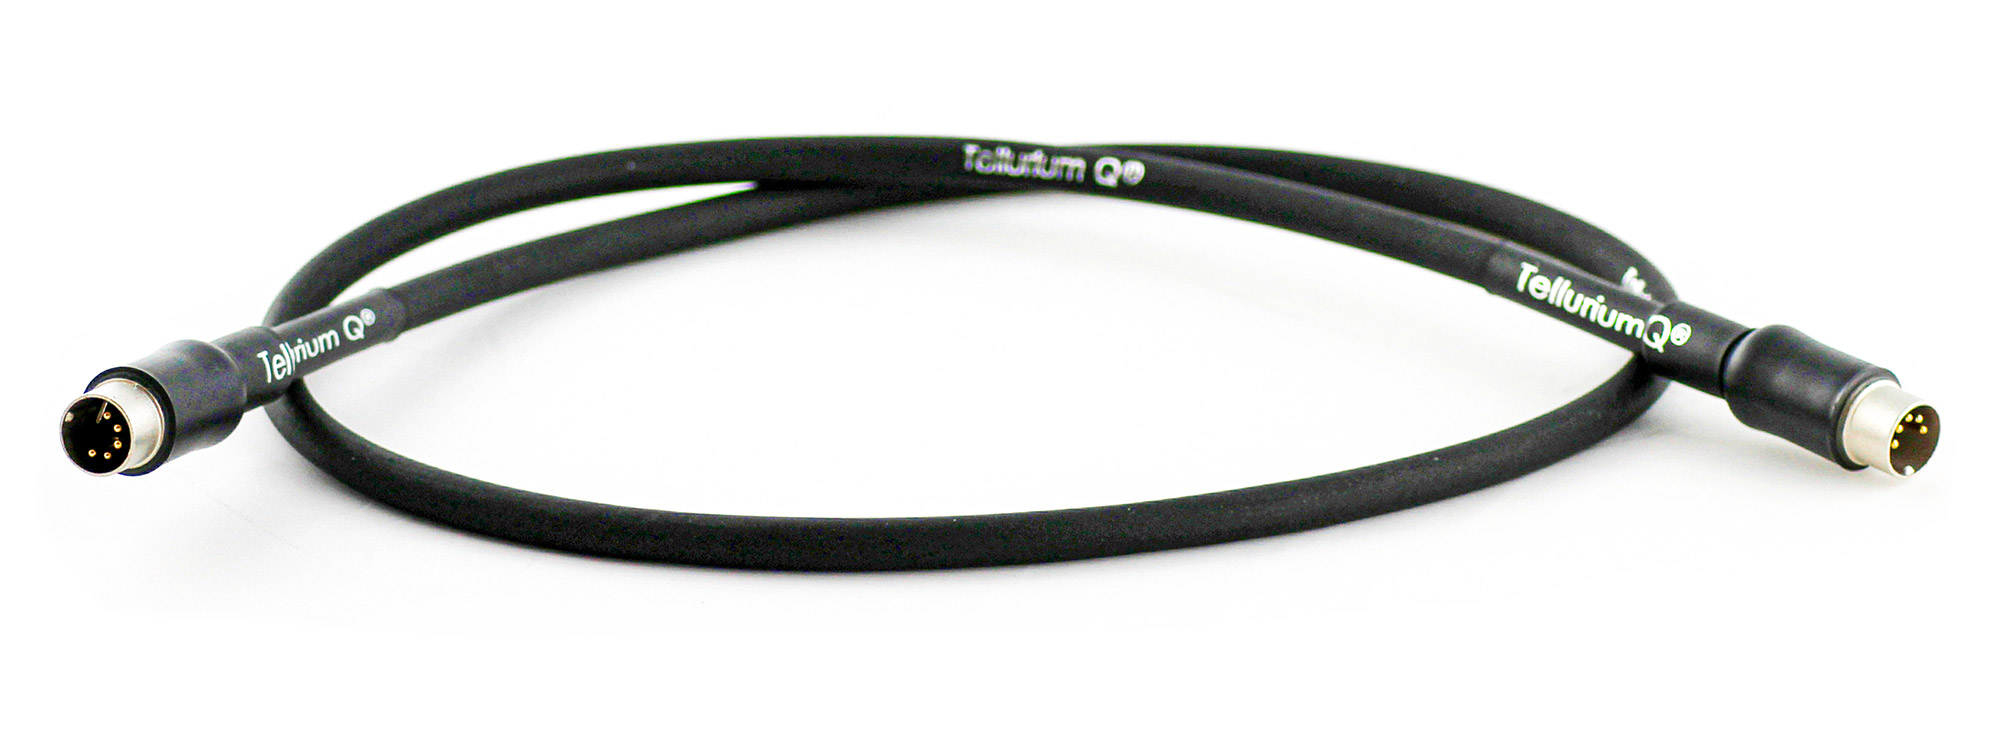 Black DIN Cable